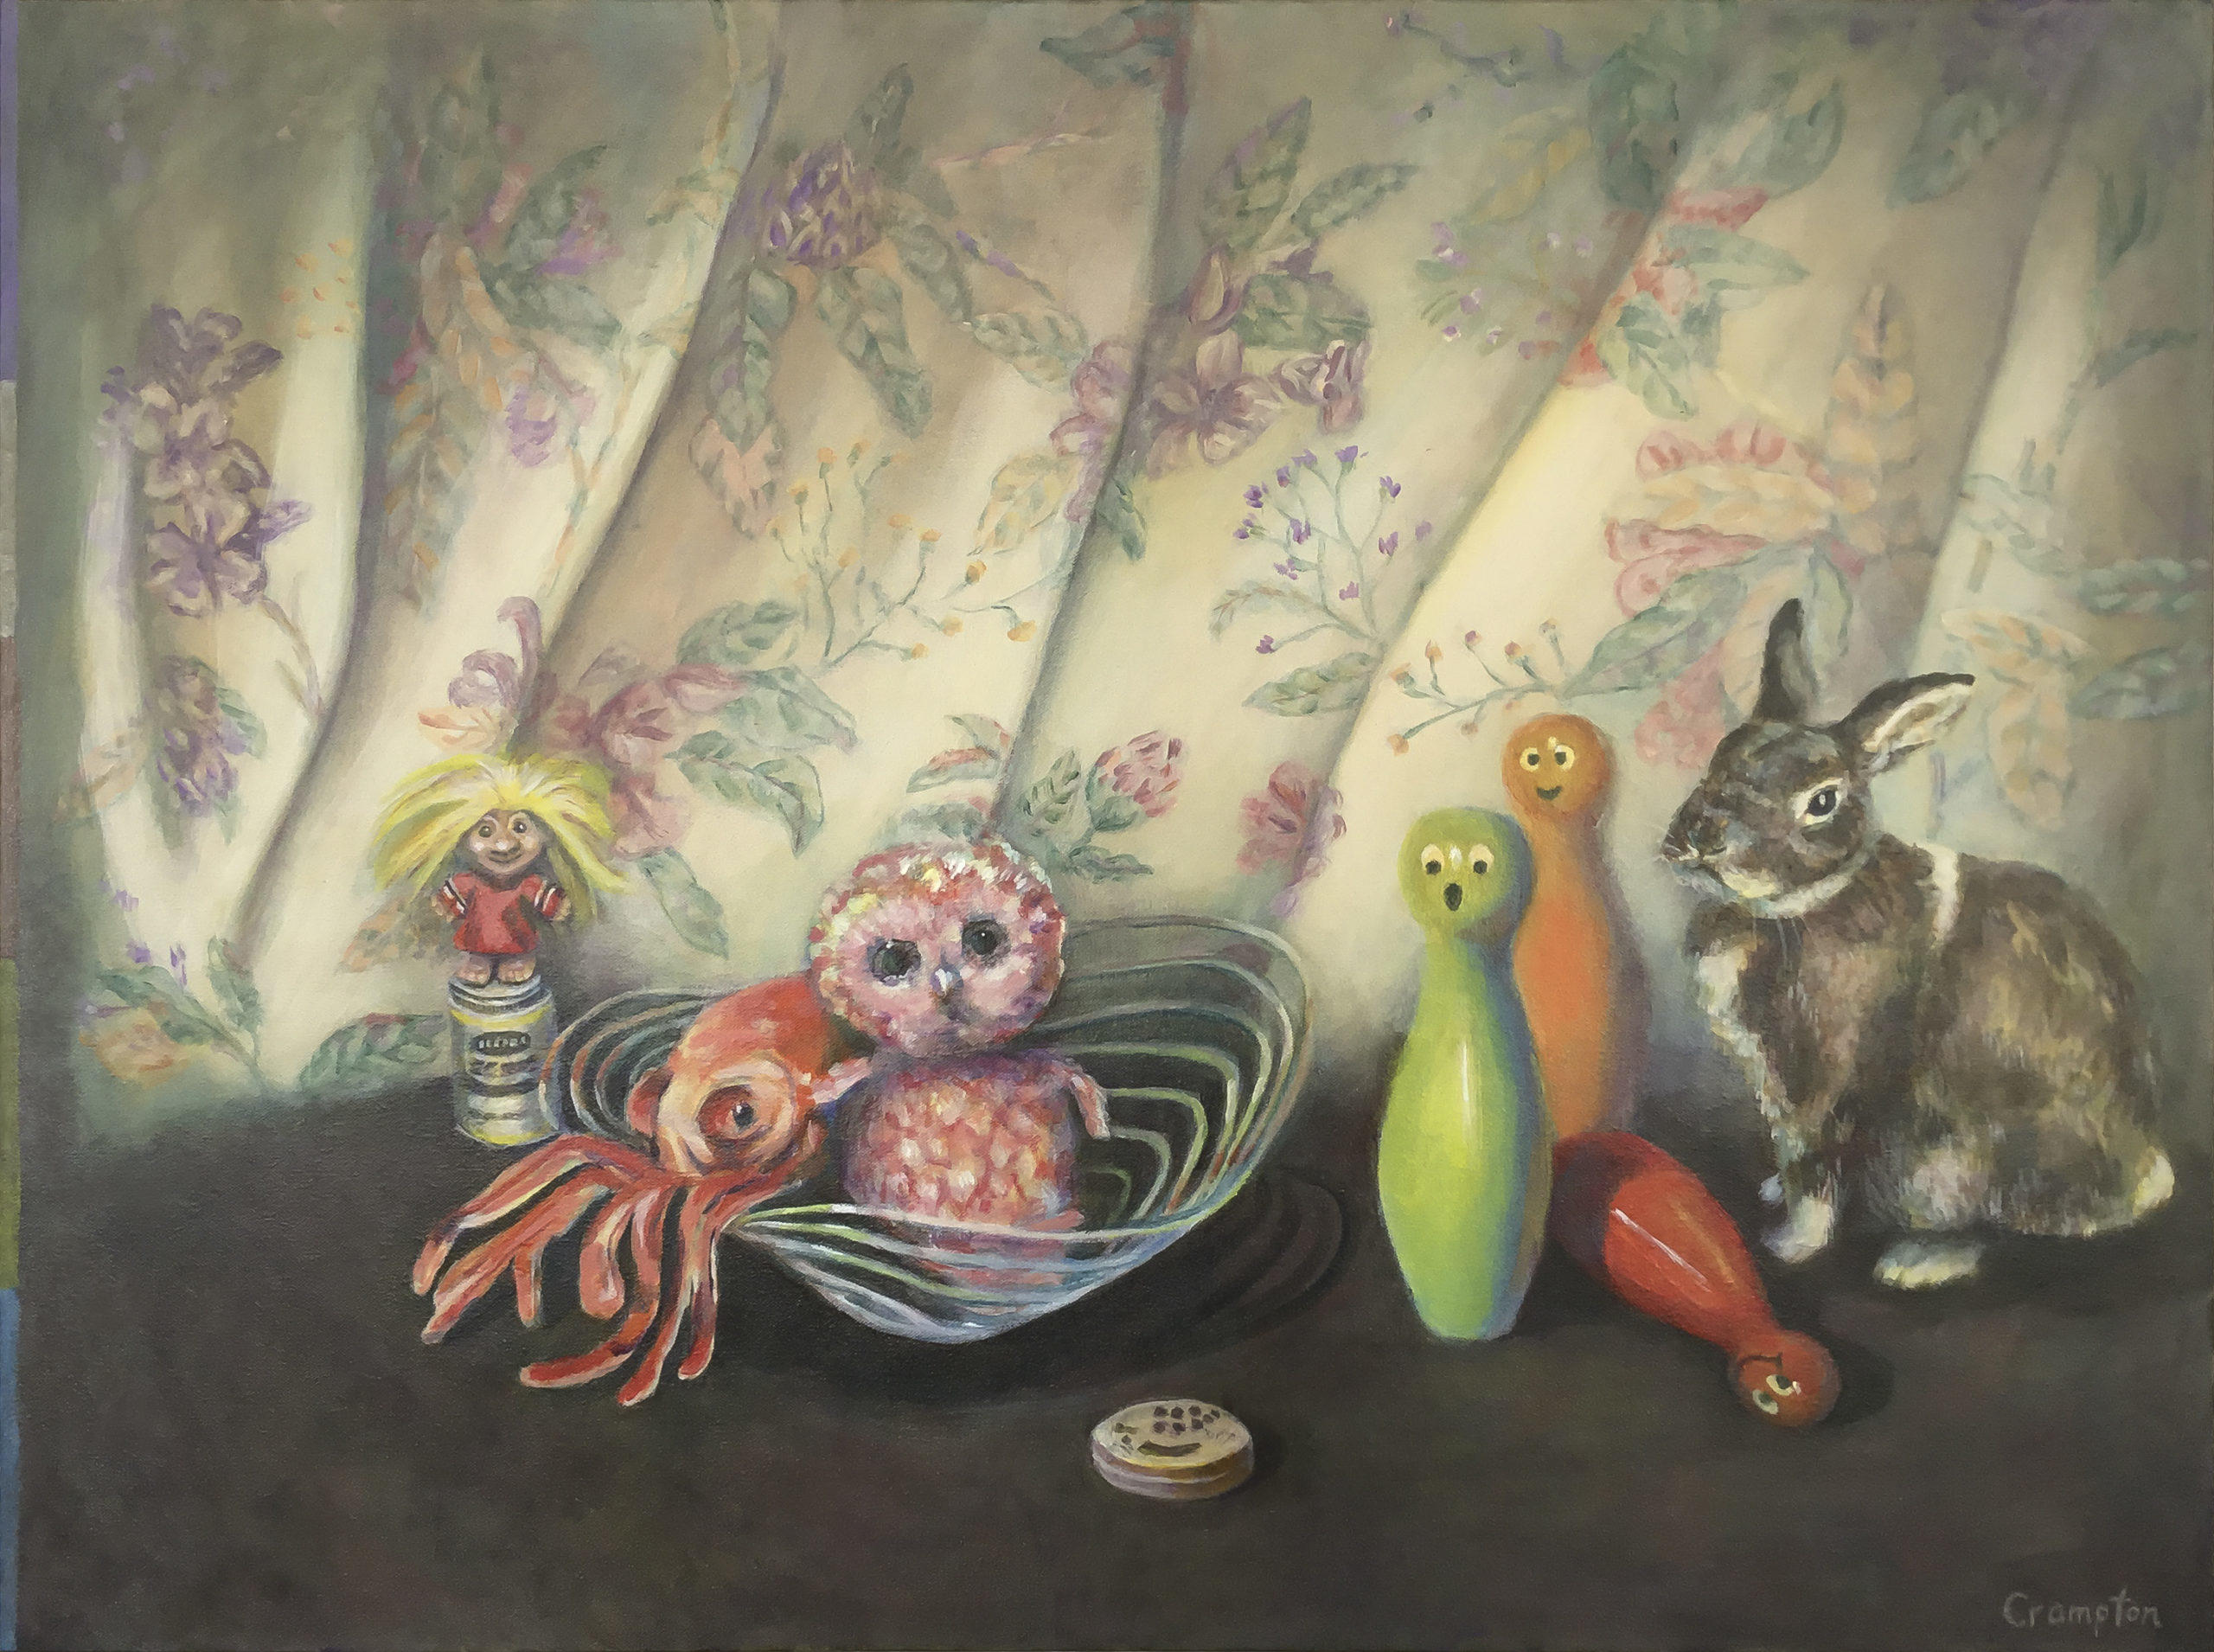 painting of toy owl, damn doll, octopus, bowling pins and Rabbit